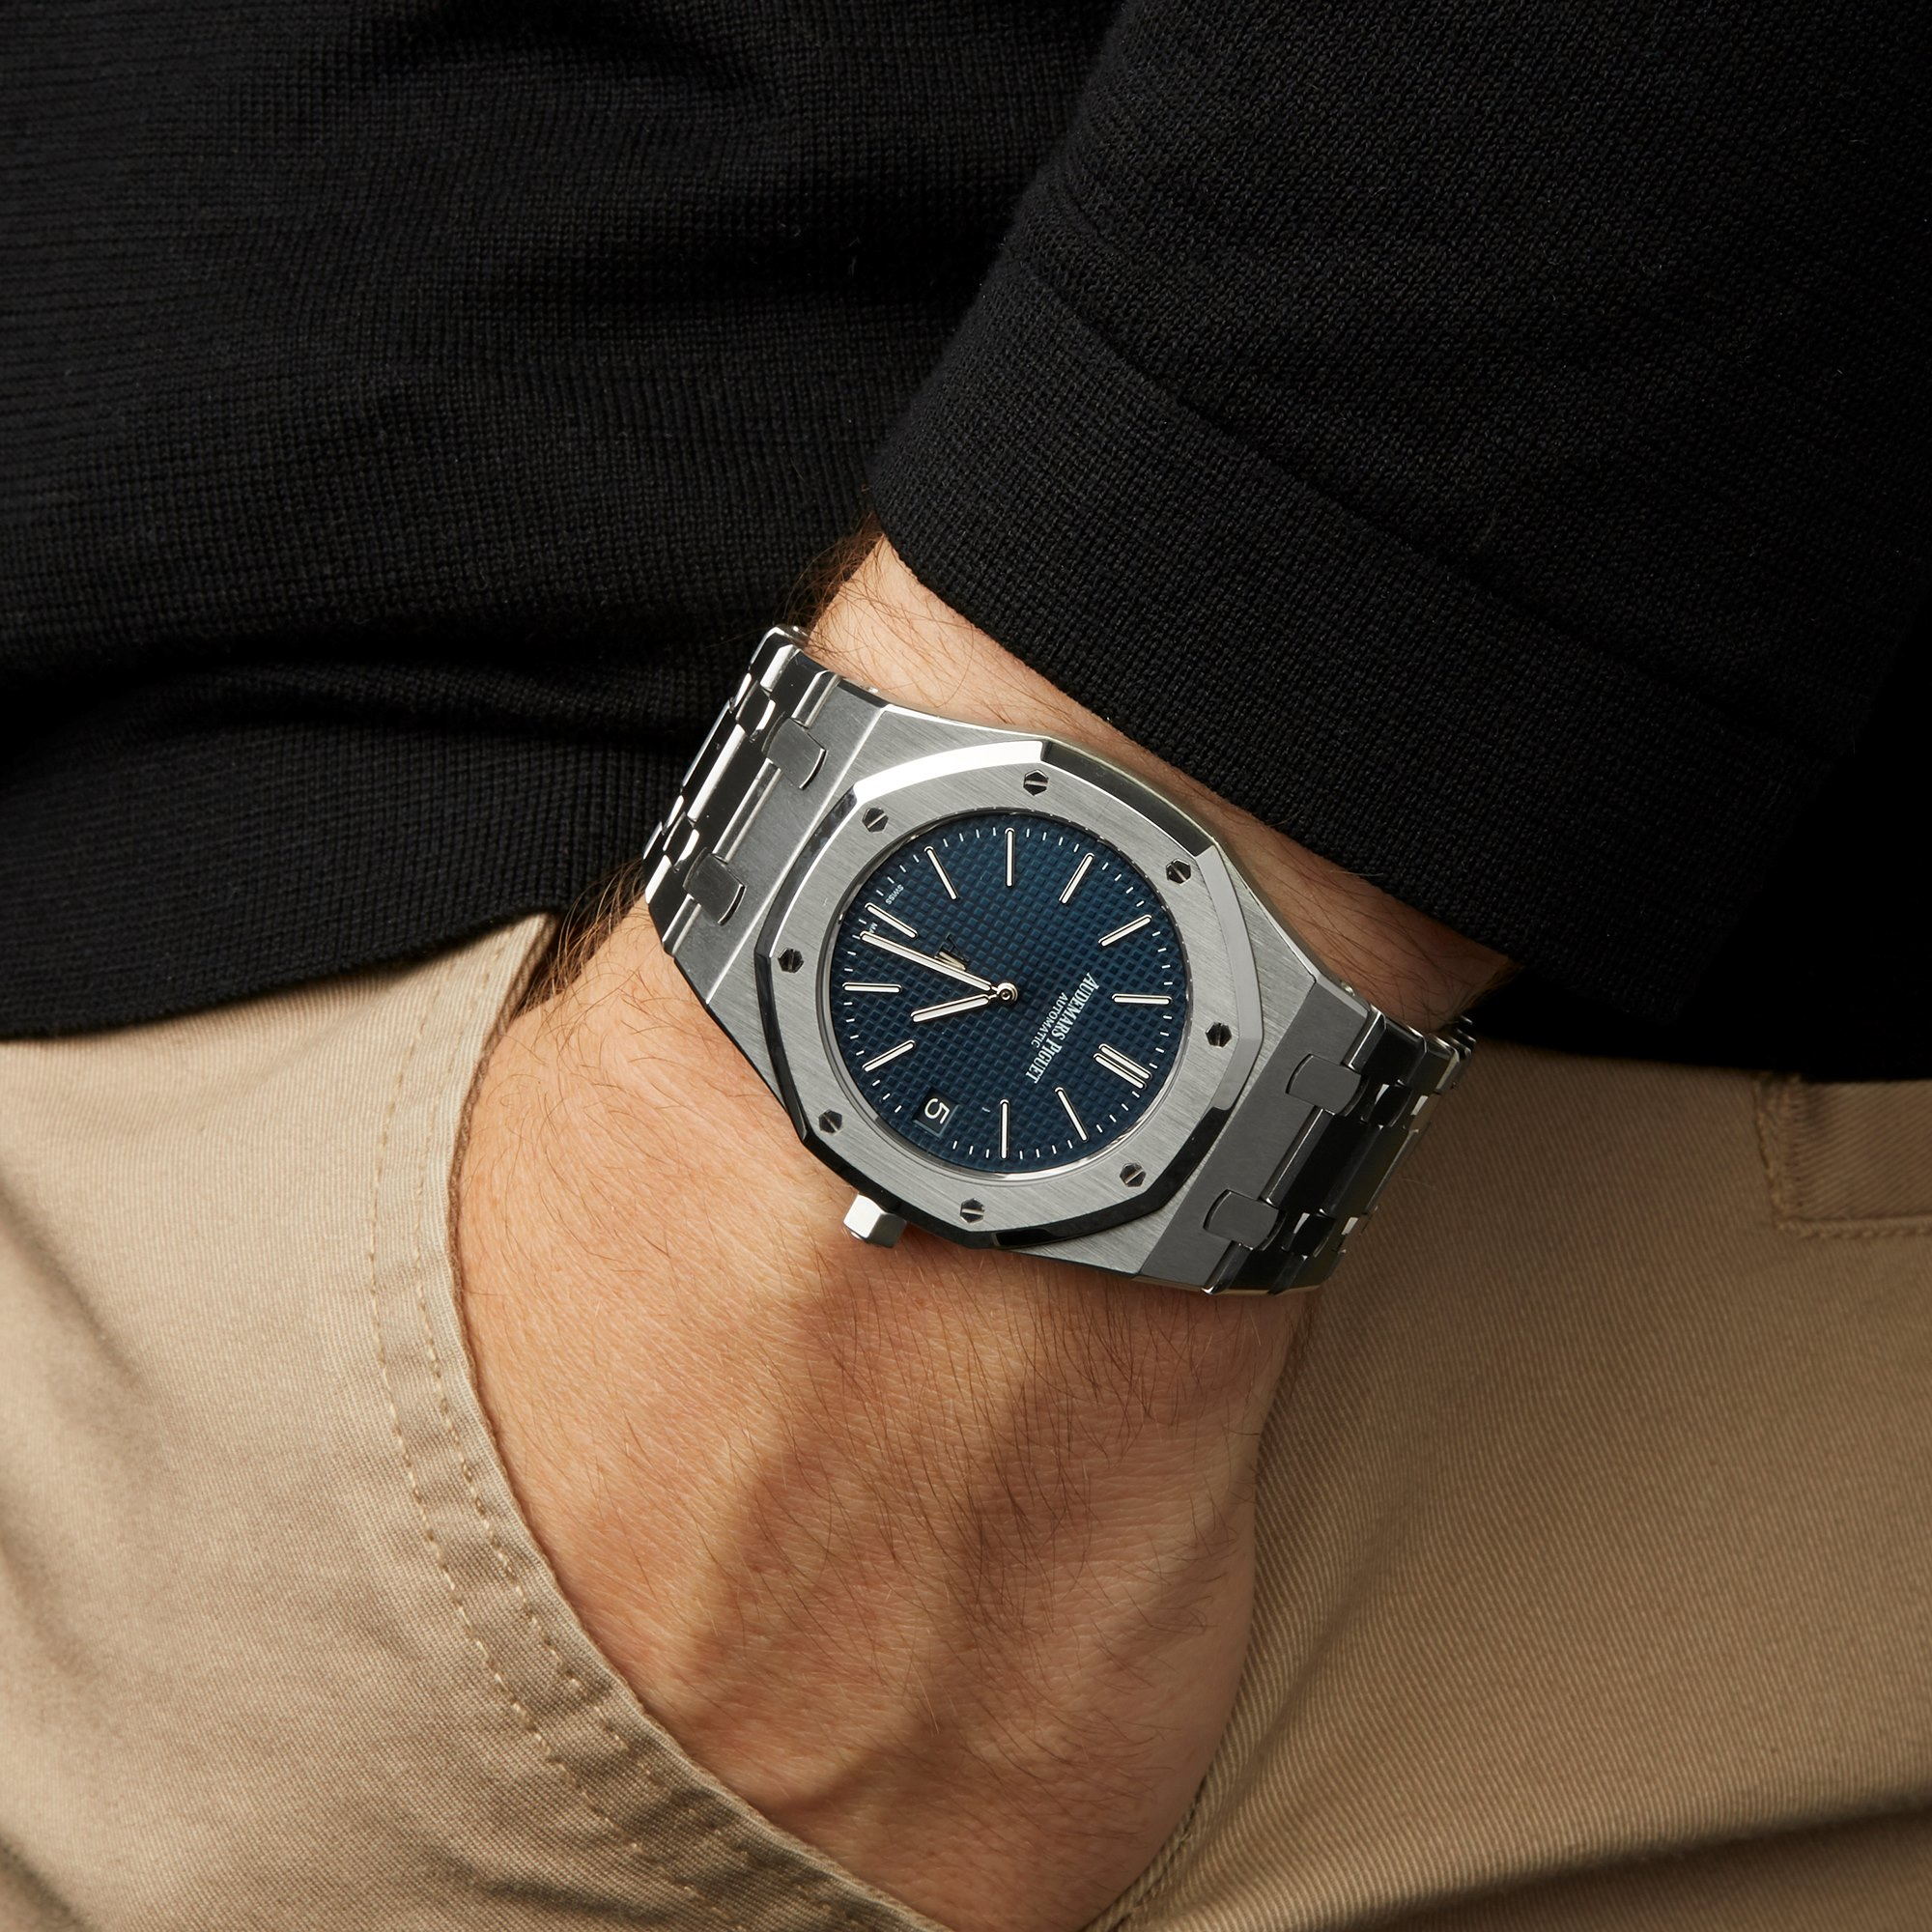 Audemars Piguet Royal Oak 15202st Oo 1240st 01 2014 W6483 Tweedehands Horloges